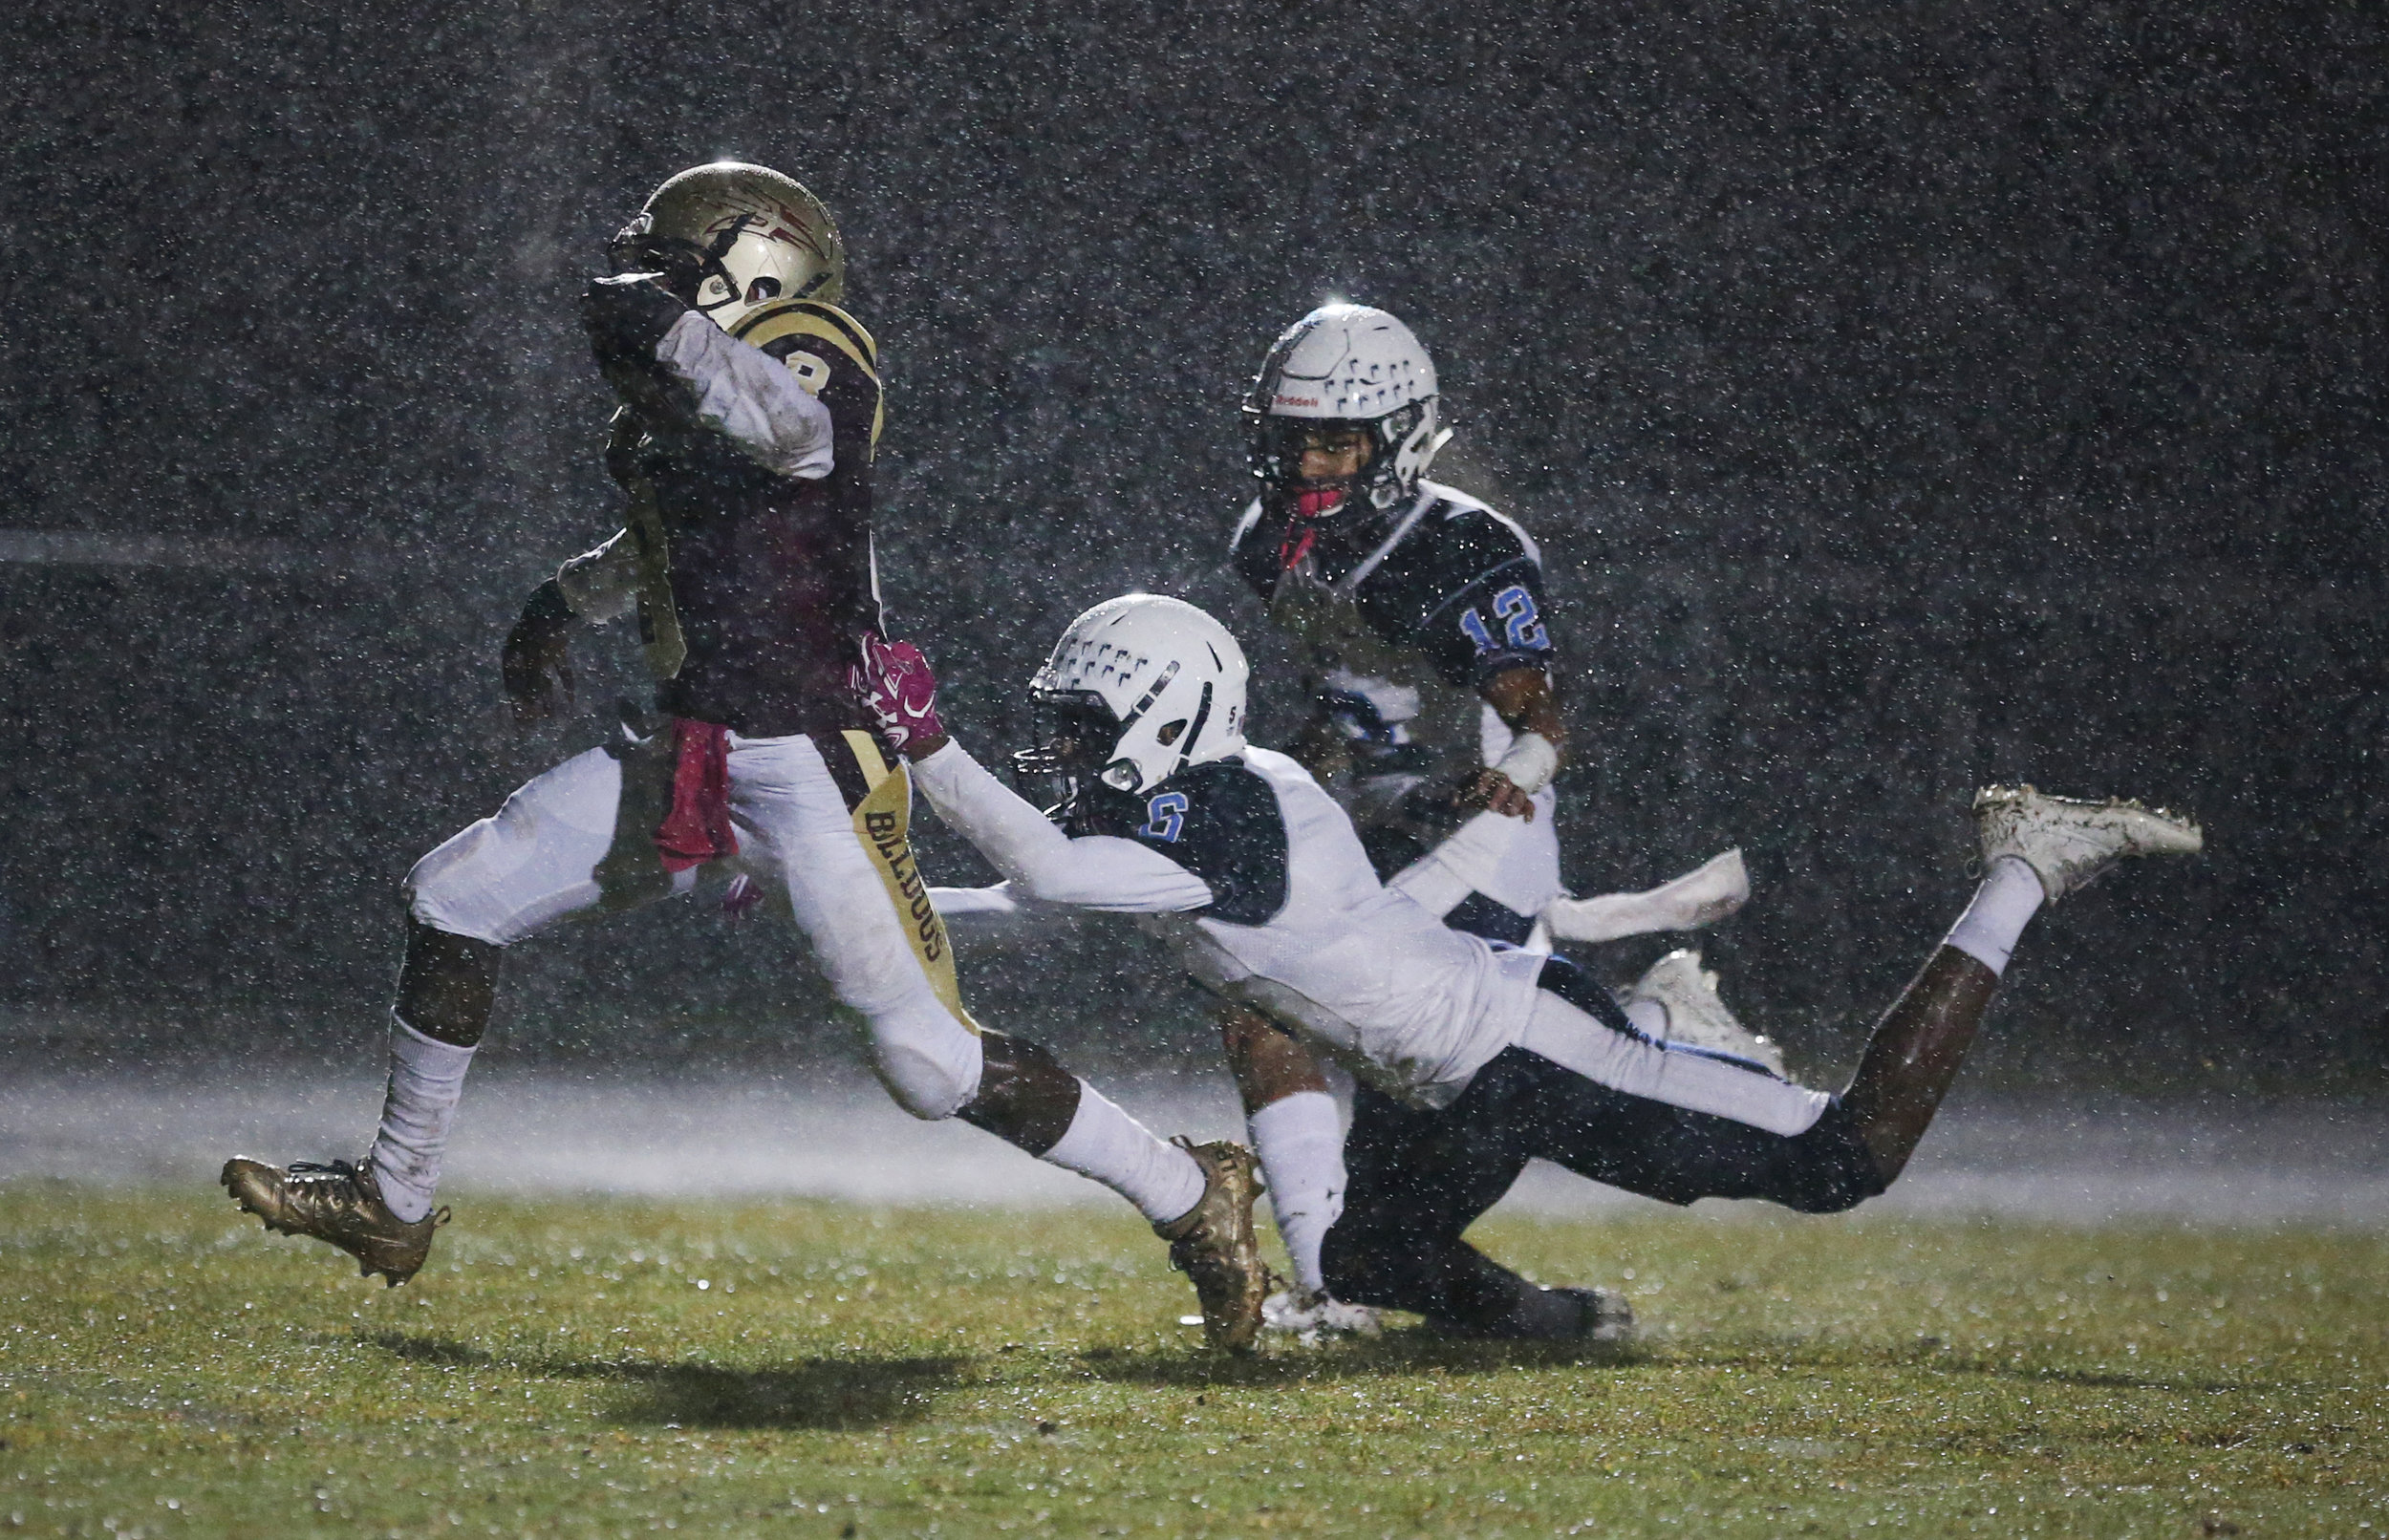 On a rain-soaked night, King's Fork's Darran Butts breaks past Indian River's Demetri Payne, center, and Isaiah Hyman for a first quarter touchdown, Friday, Oct. 13, 2017 at King's Fork High School in Suffolk.